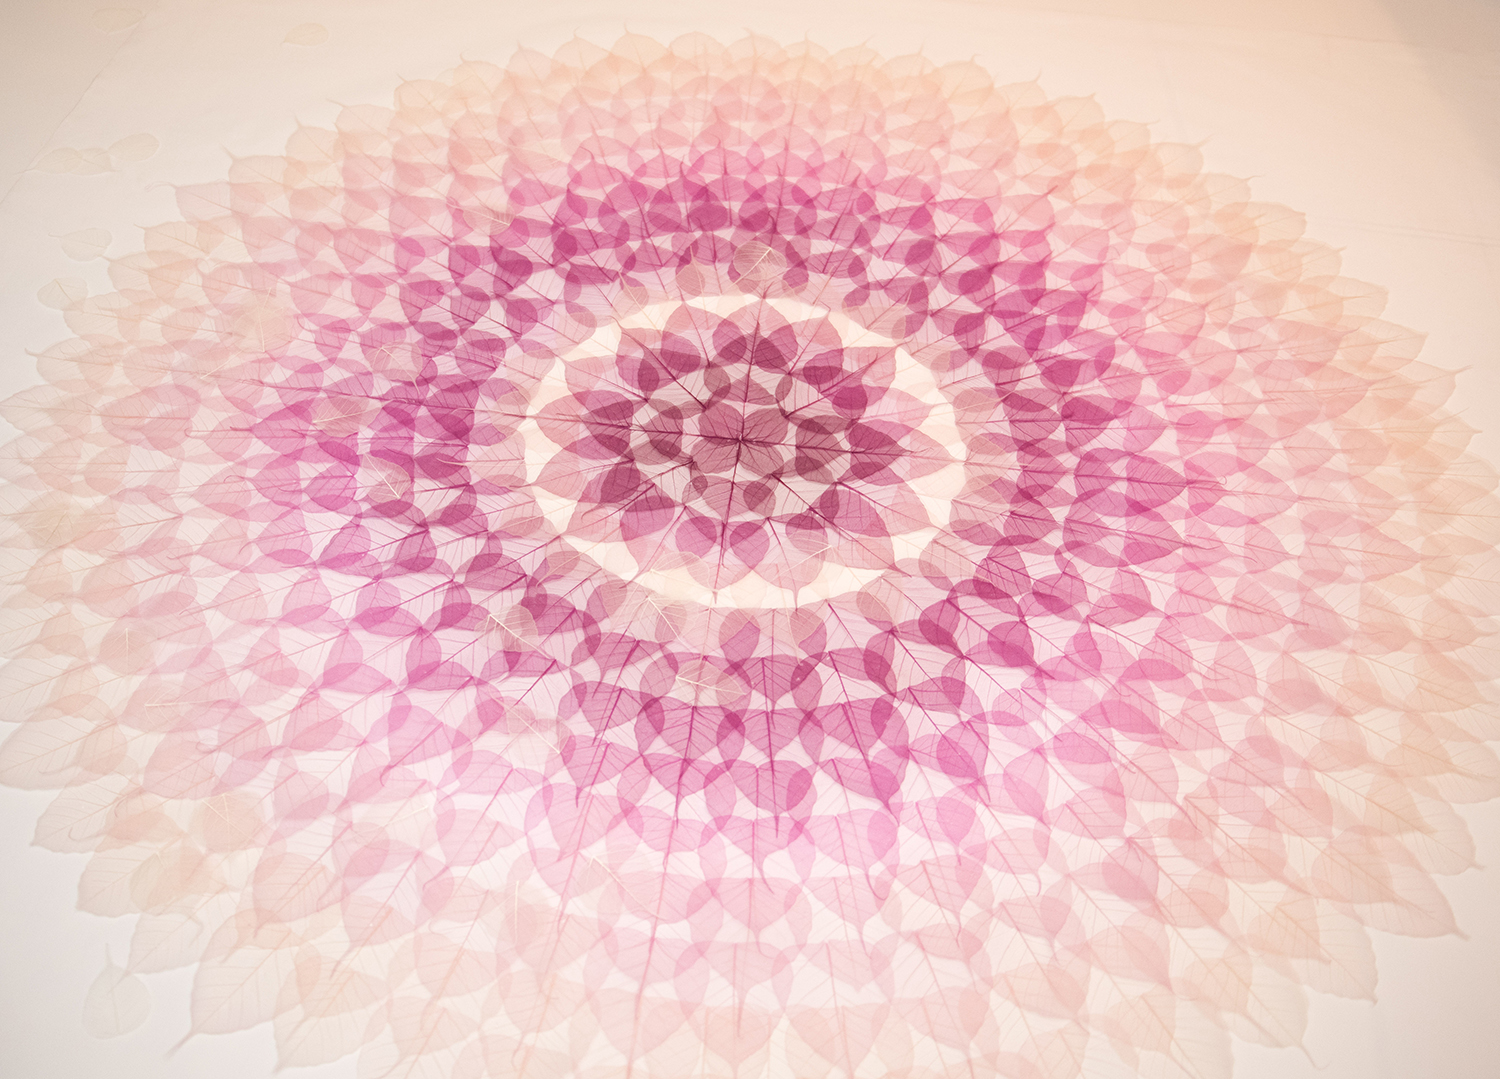 """WISHING MANDALA FOR THE LOTUS CIRCLE,"" THE ASIA FOUNDATION, SAN FRANCISCO 2019"